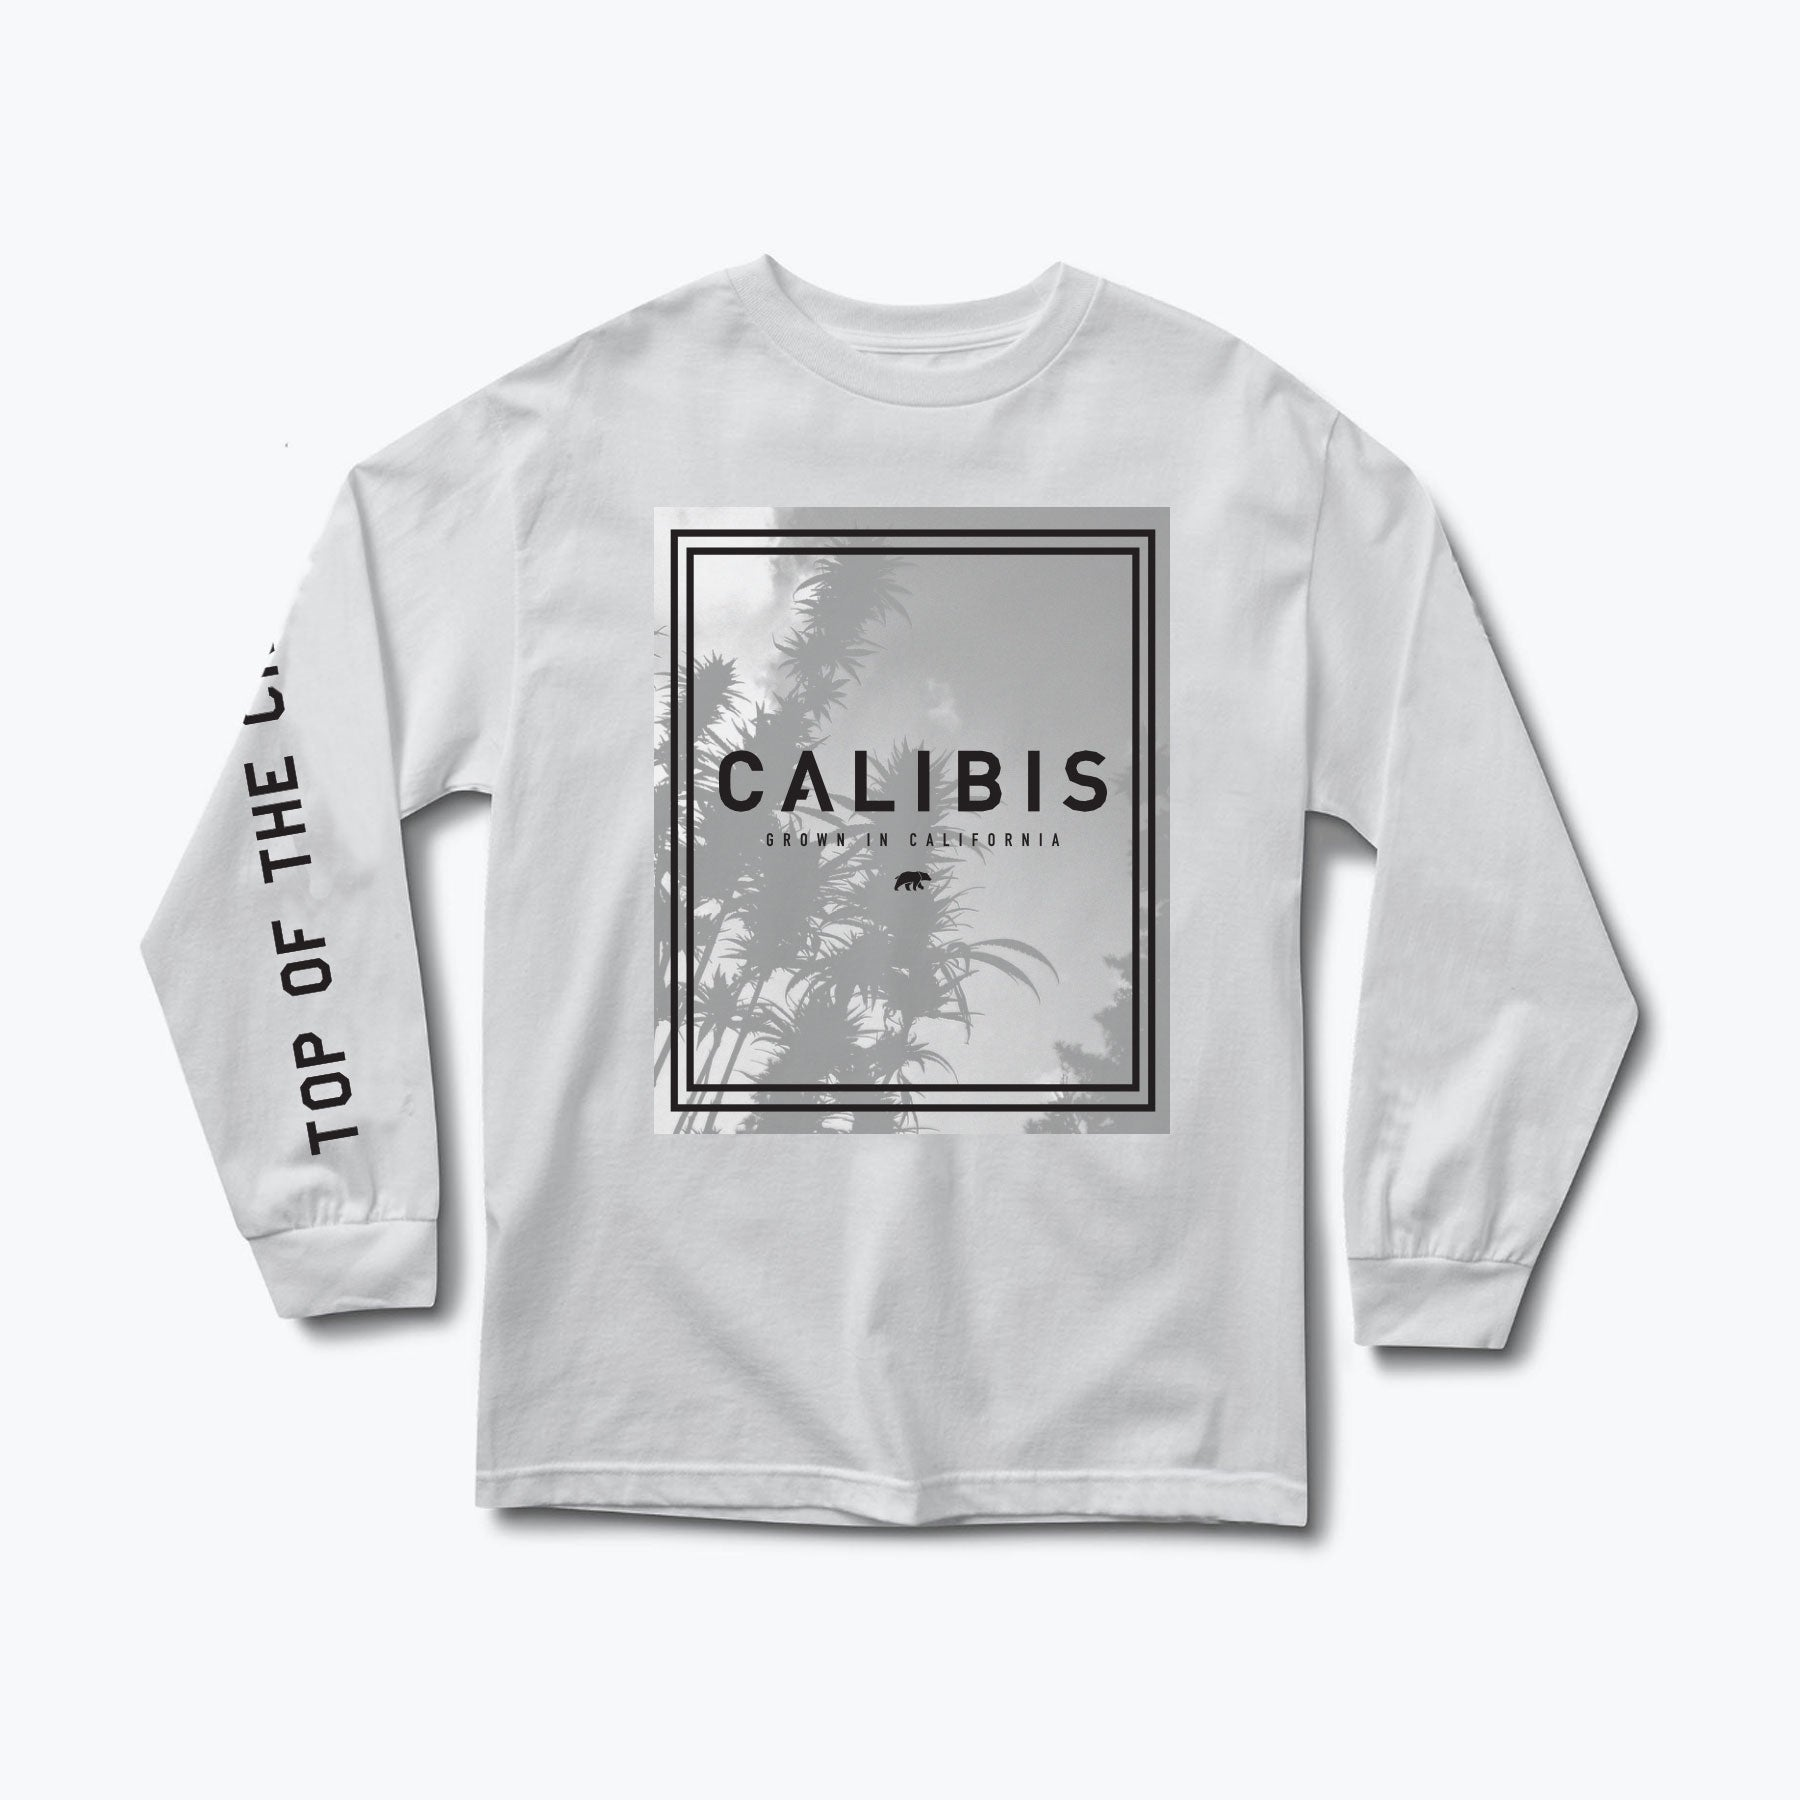 Harvest 19' Long-sleeve Tee by Calibis Clothing